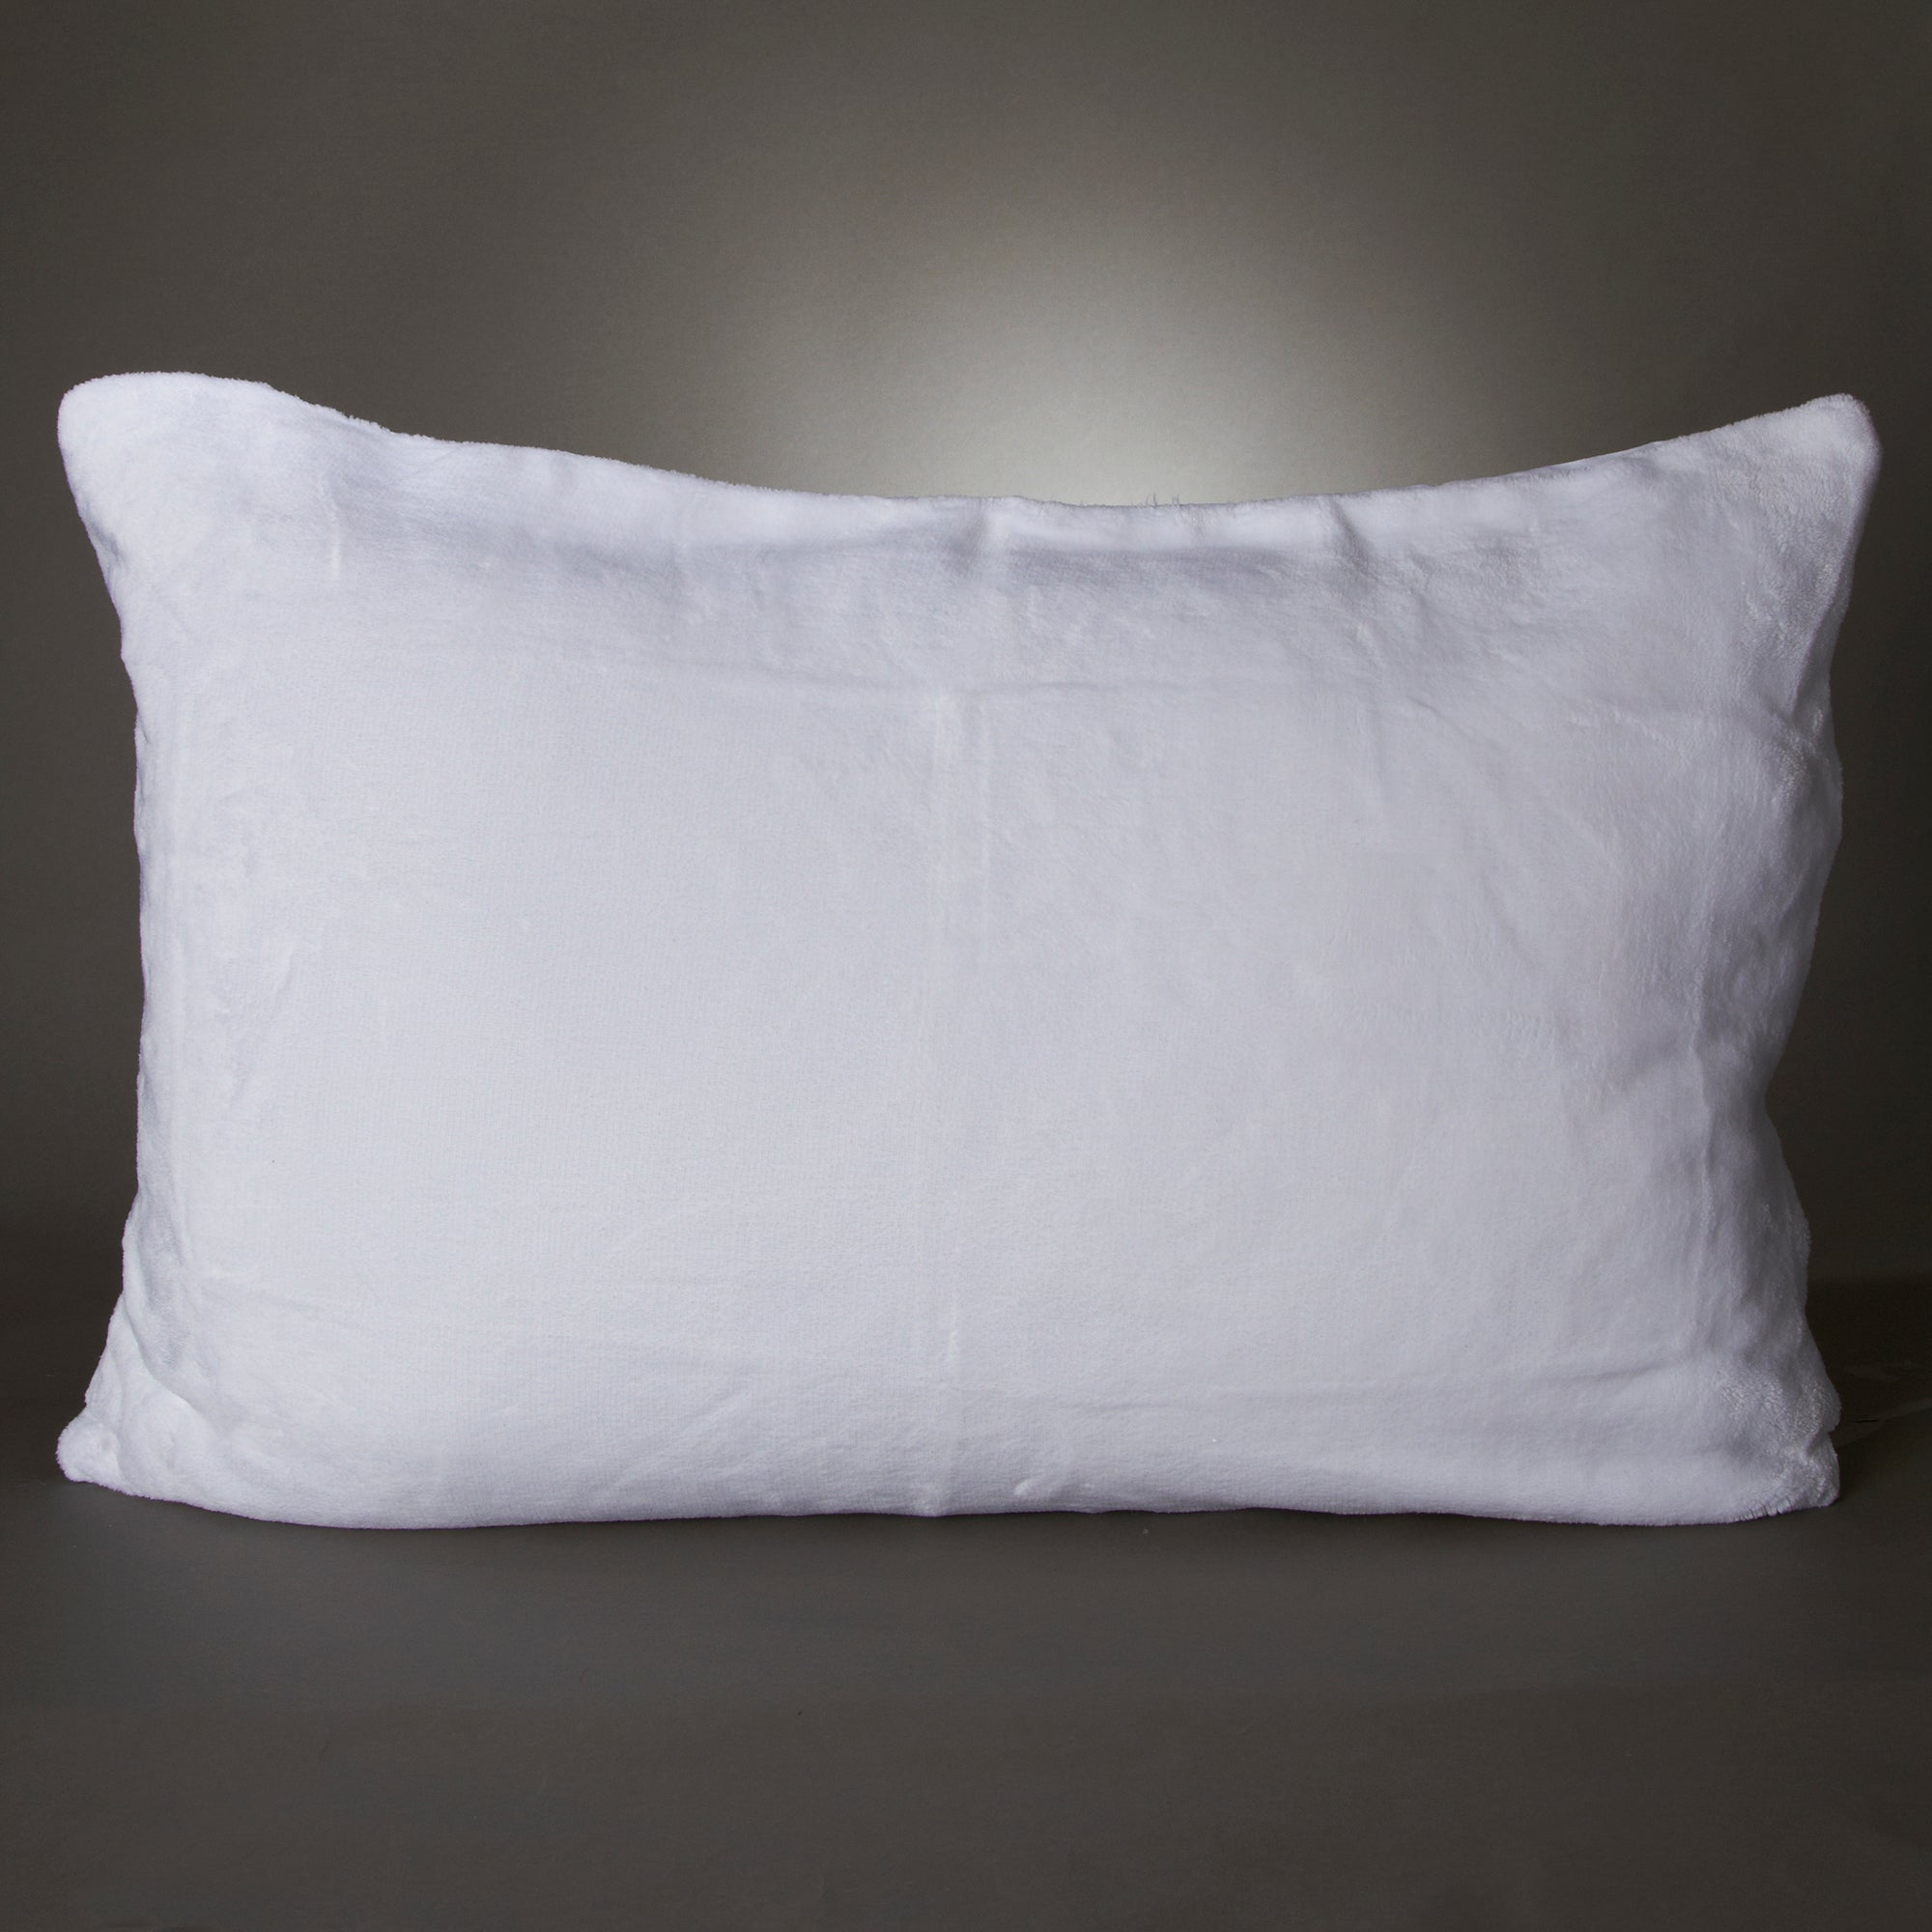 Dorma Suprememly Soft Pillow Cover